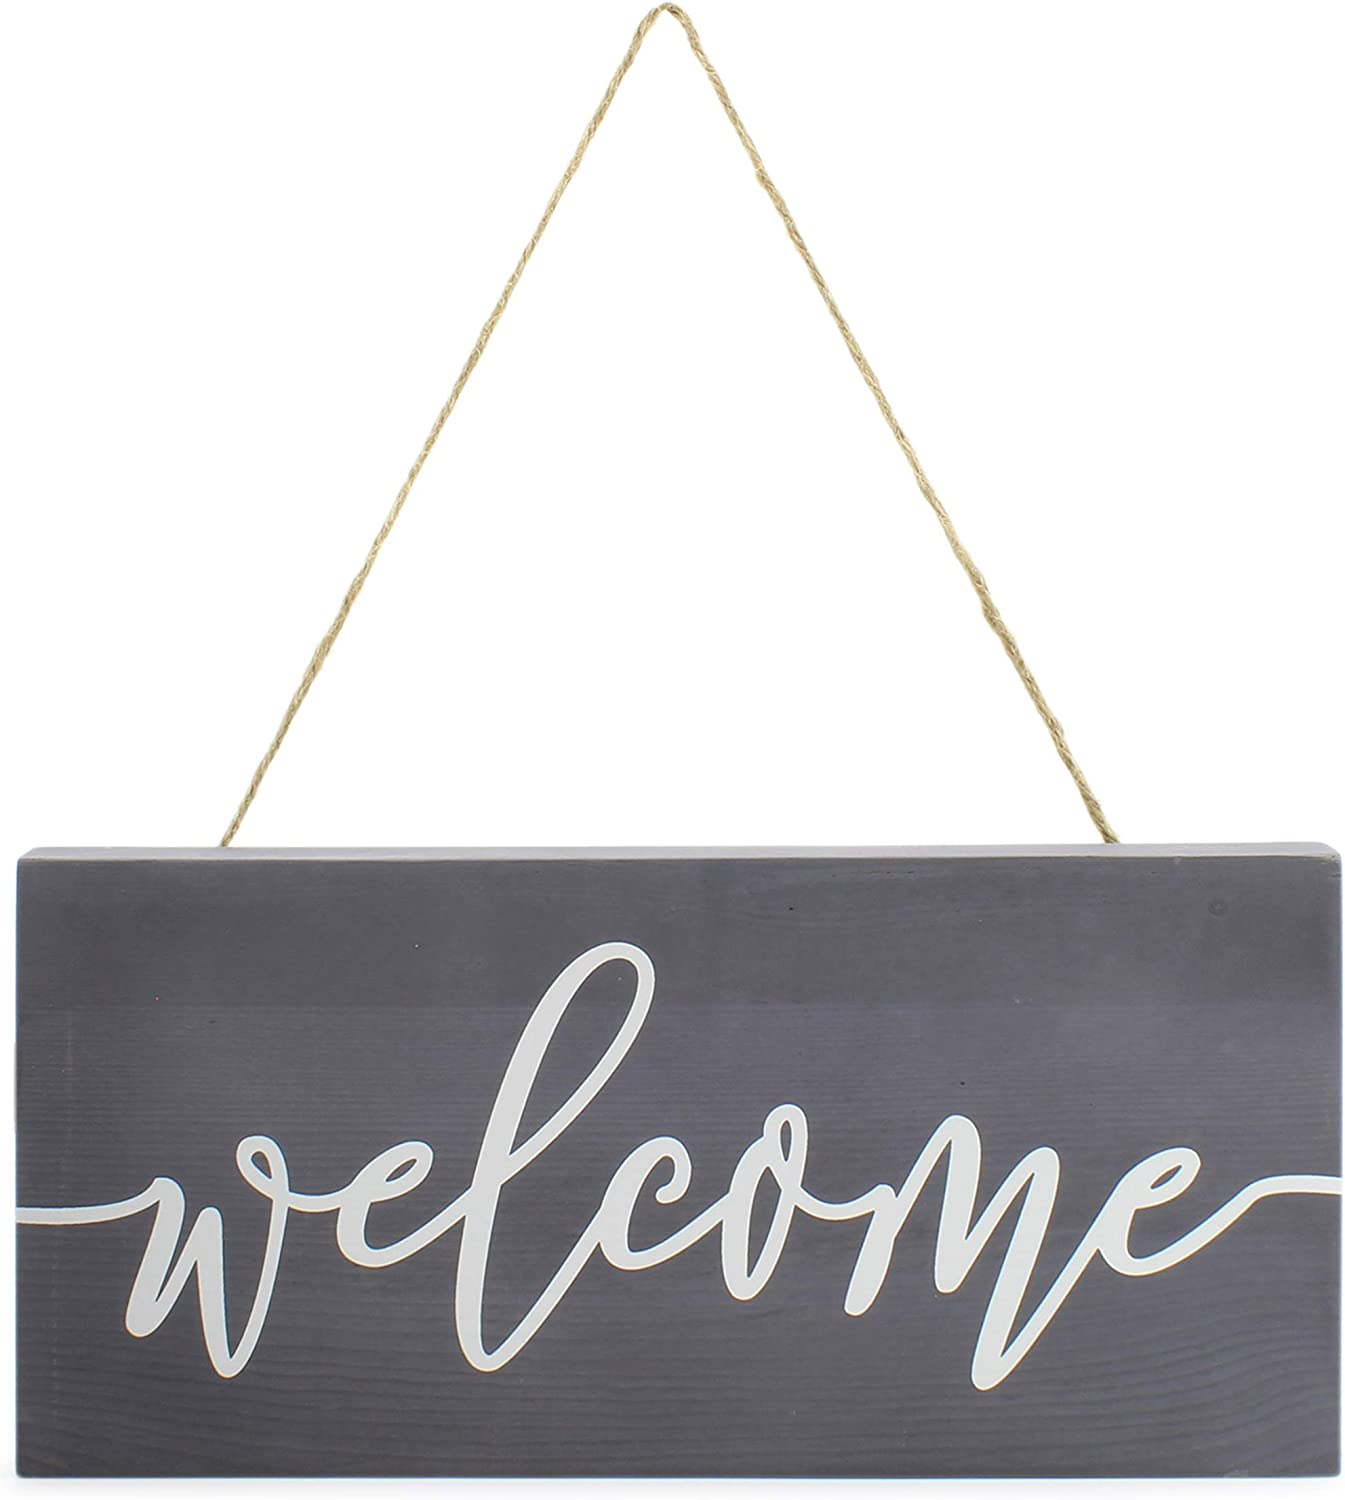 AuldHome Farmhouse Wooden Welcome Sign, Gray and White Rustic Style Wood Hanging Plaque, 12 x 6 Inches